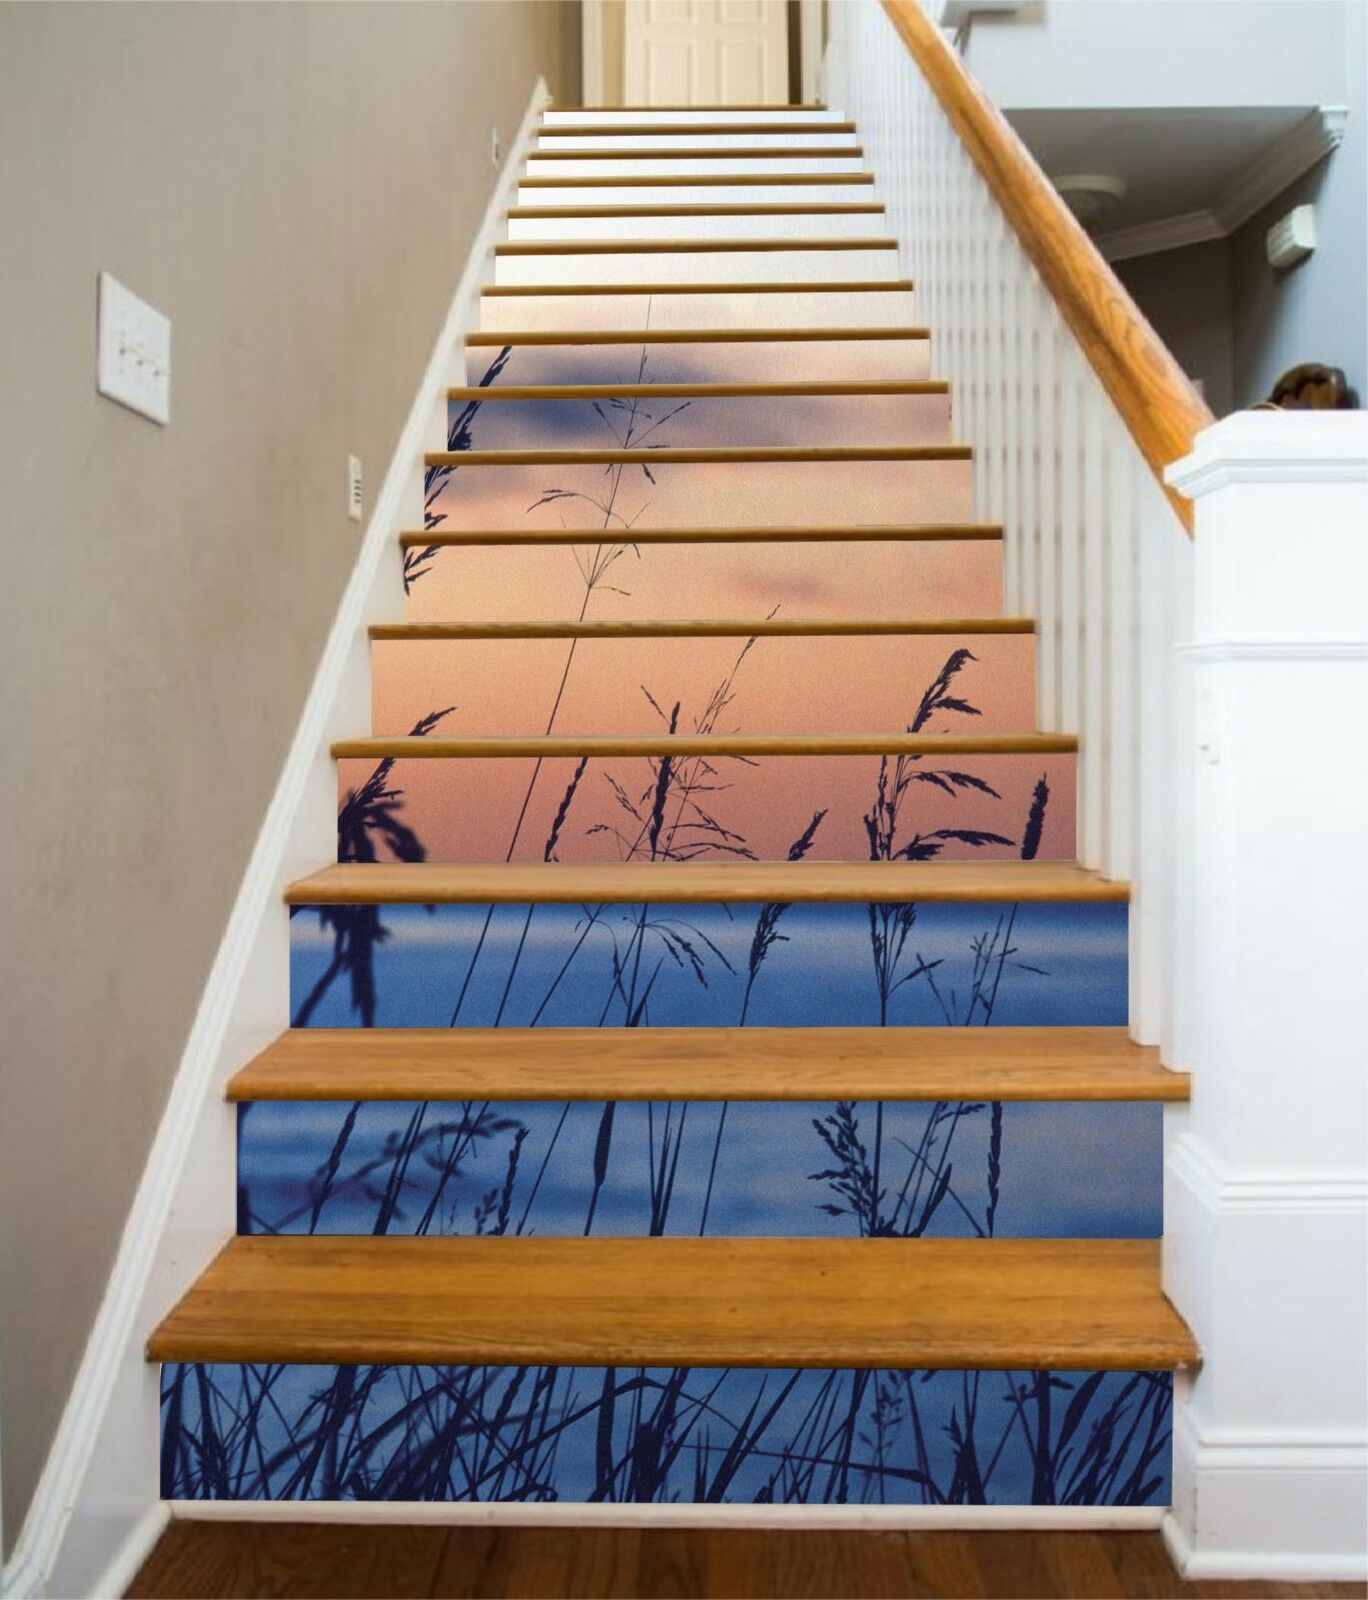 3D Teed River Stair Risers Decoration Photo Mural Vinyl Decal Wallpaper US